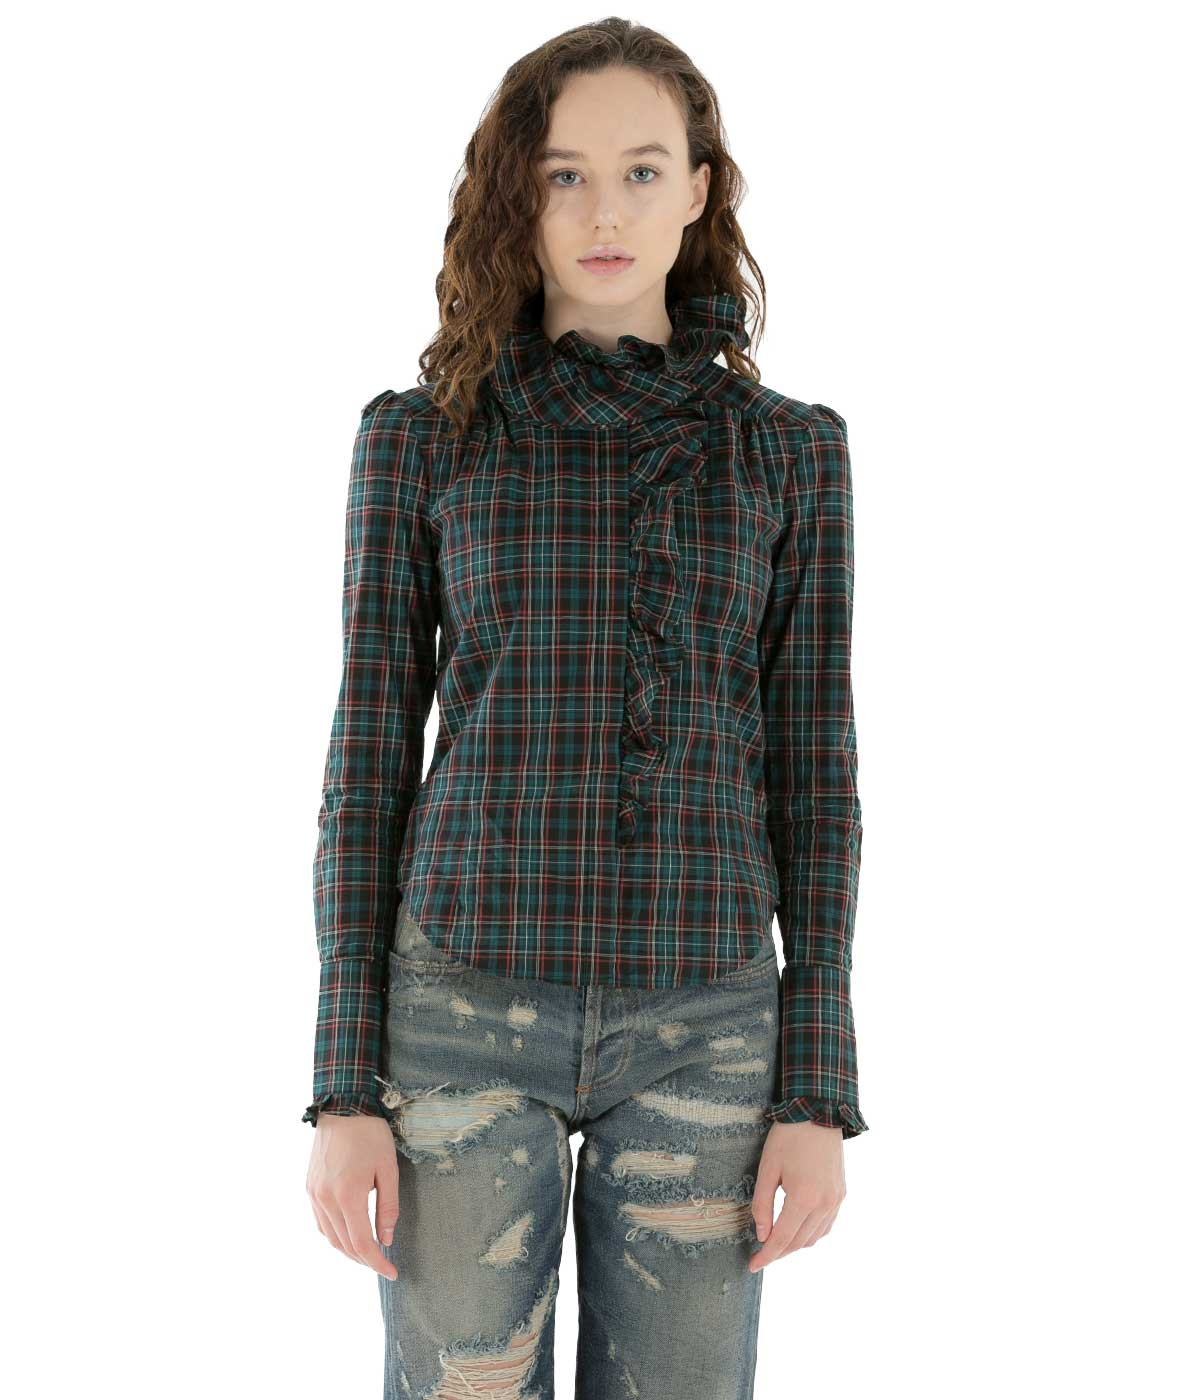 Green Checkered Ruffle Shirt